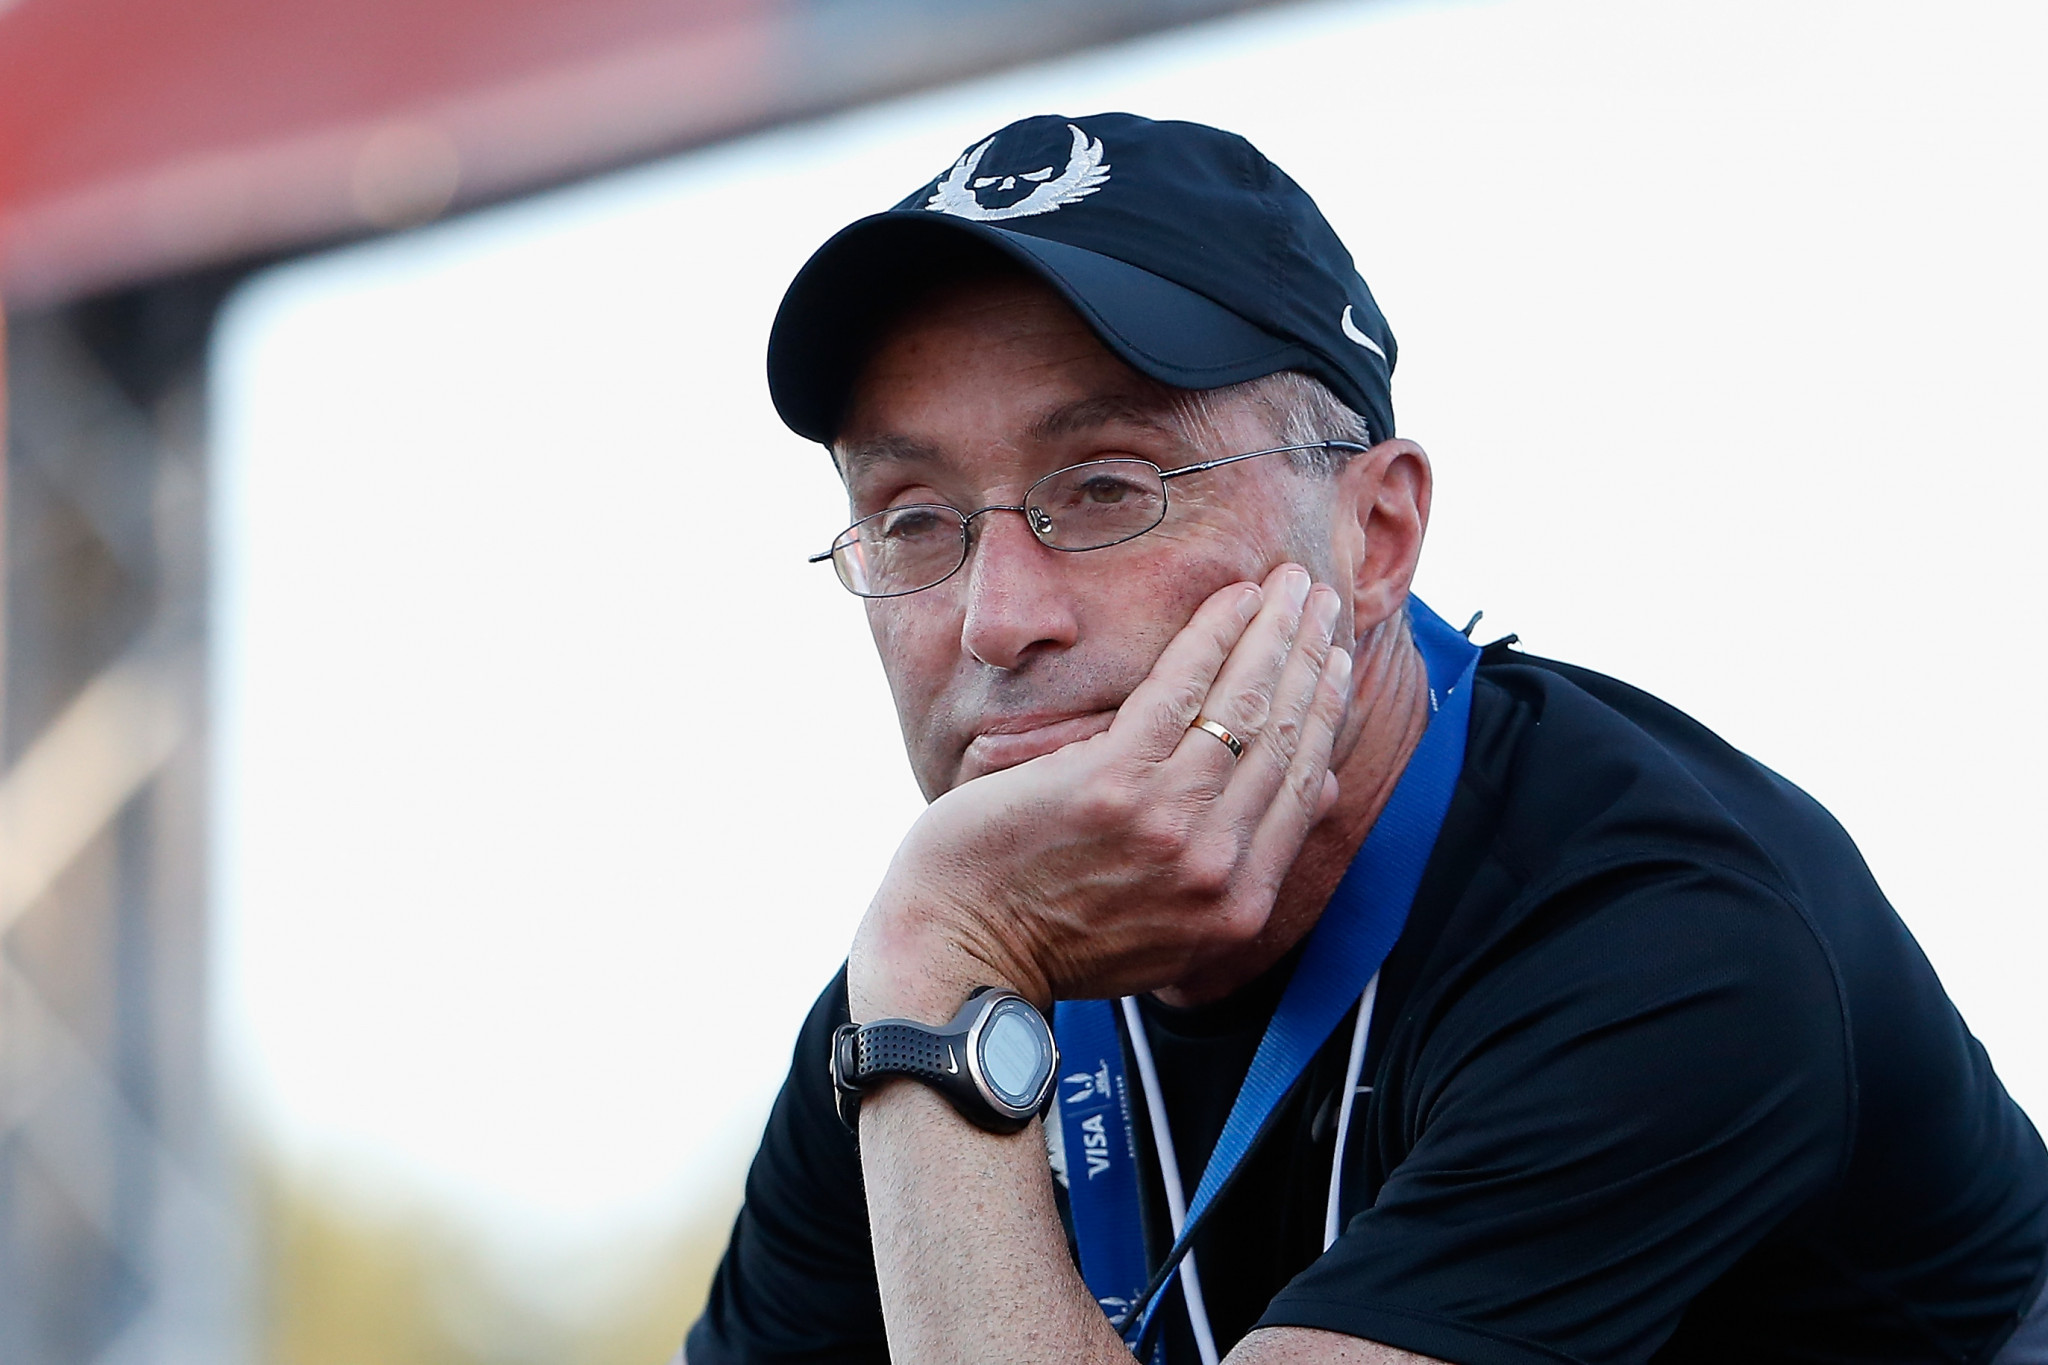 Exclusive: Salazar athletes in Doha told to stay away from US coach after four-year doping ban